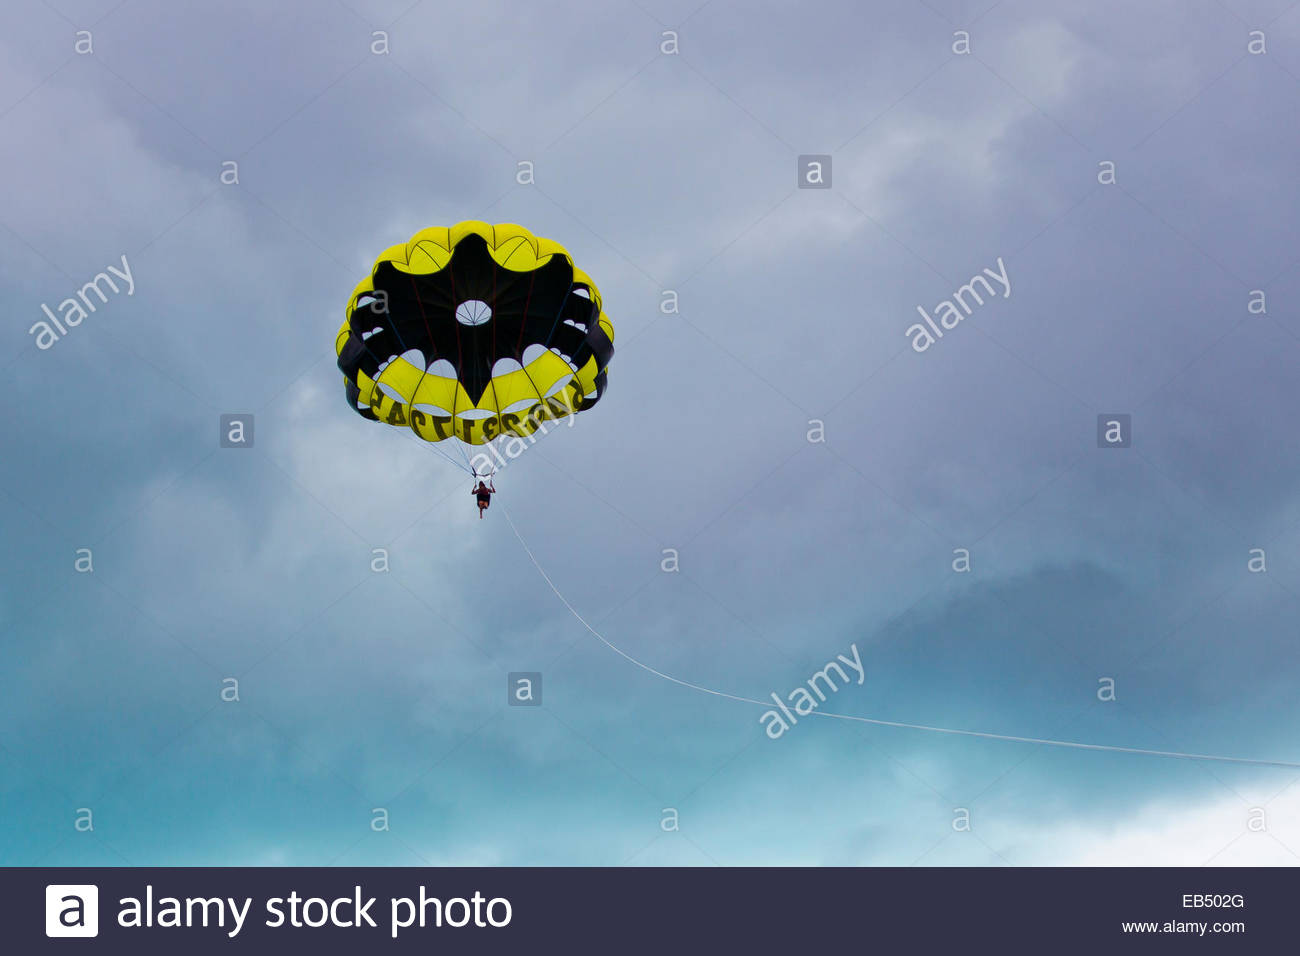 A woman parasailing over Grace Bay in a cloud-filled sky, using a Batman-themed parachute. - Stock Image